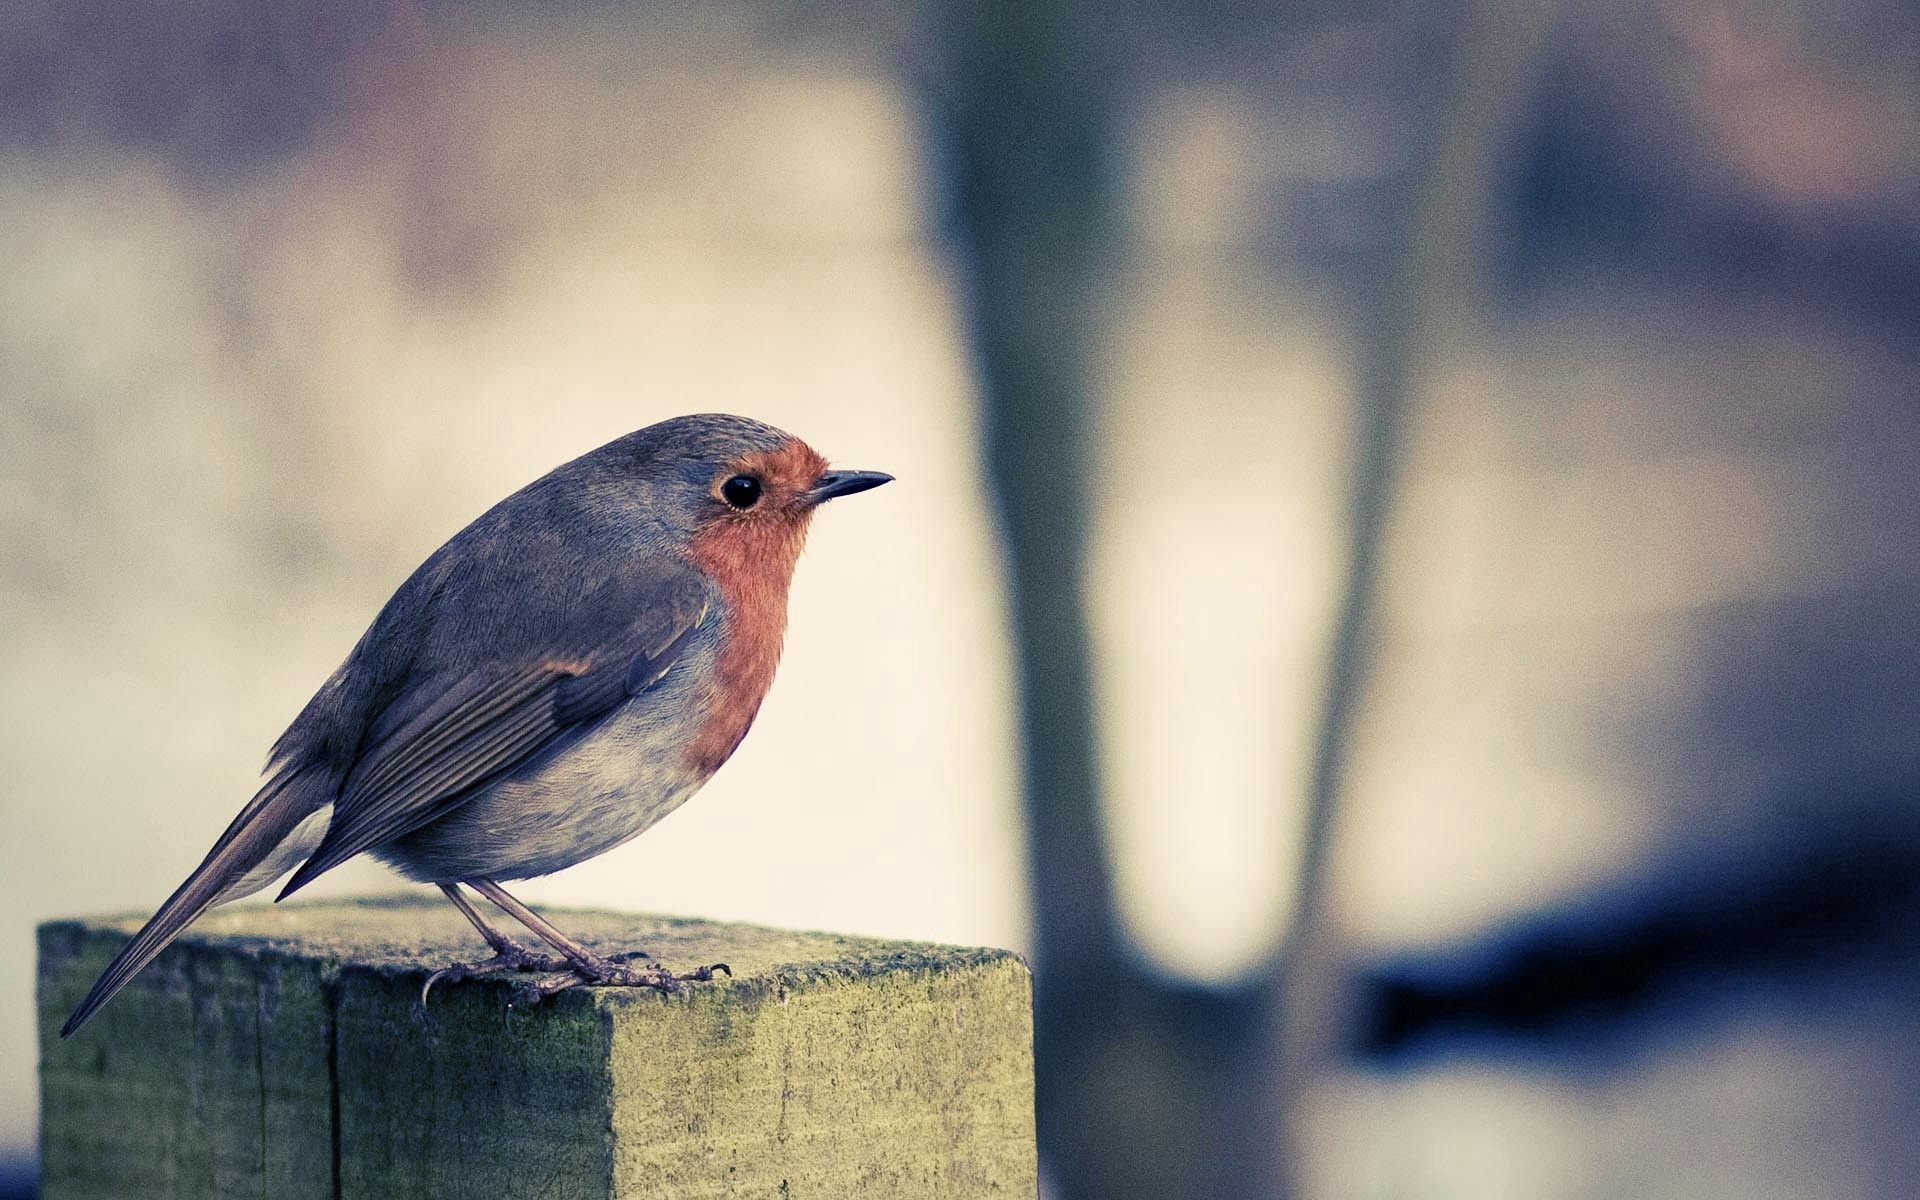 132285 download wallpaper Animals, Bird, Beak, Color, Surface screensavers and pictures for free